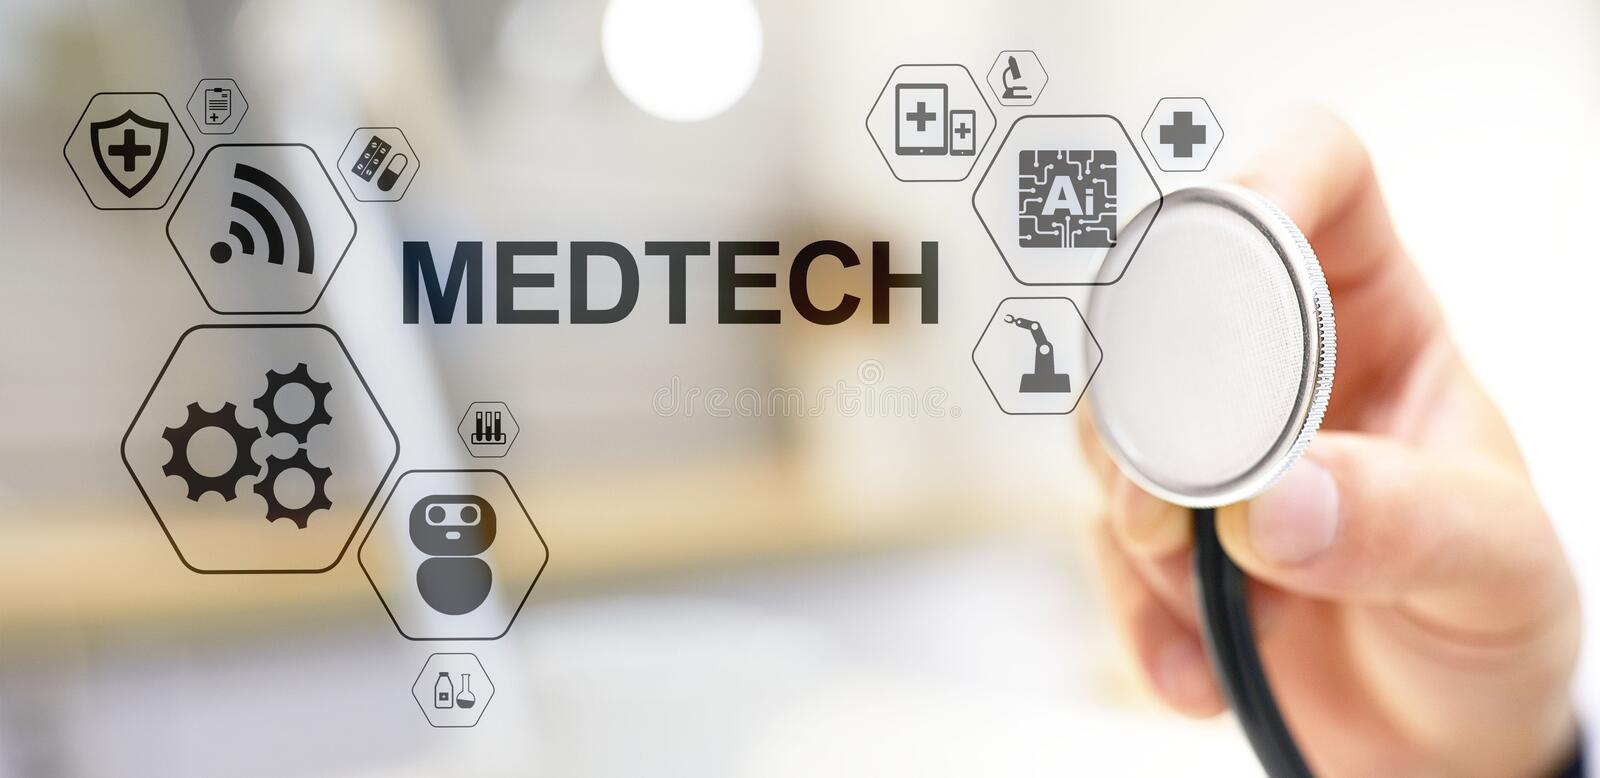 Medtech medical technology information integration internet big data concept on virtual screen. Doctor with stethoscope. royalty free stock photography